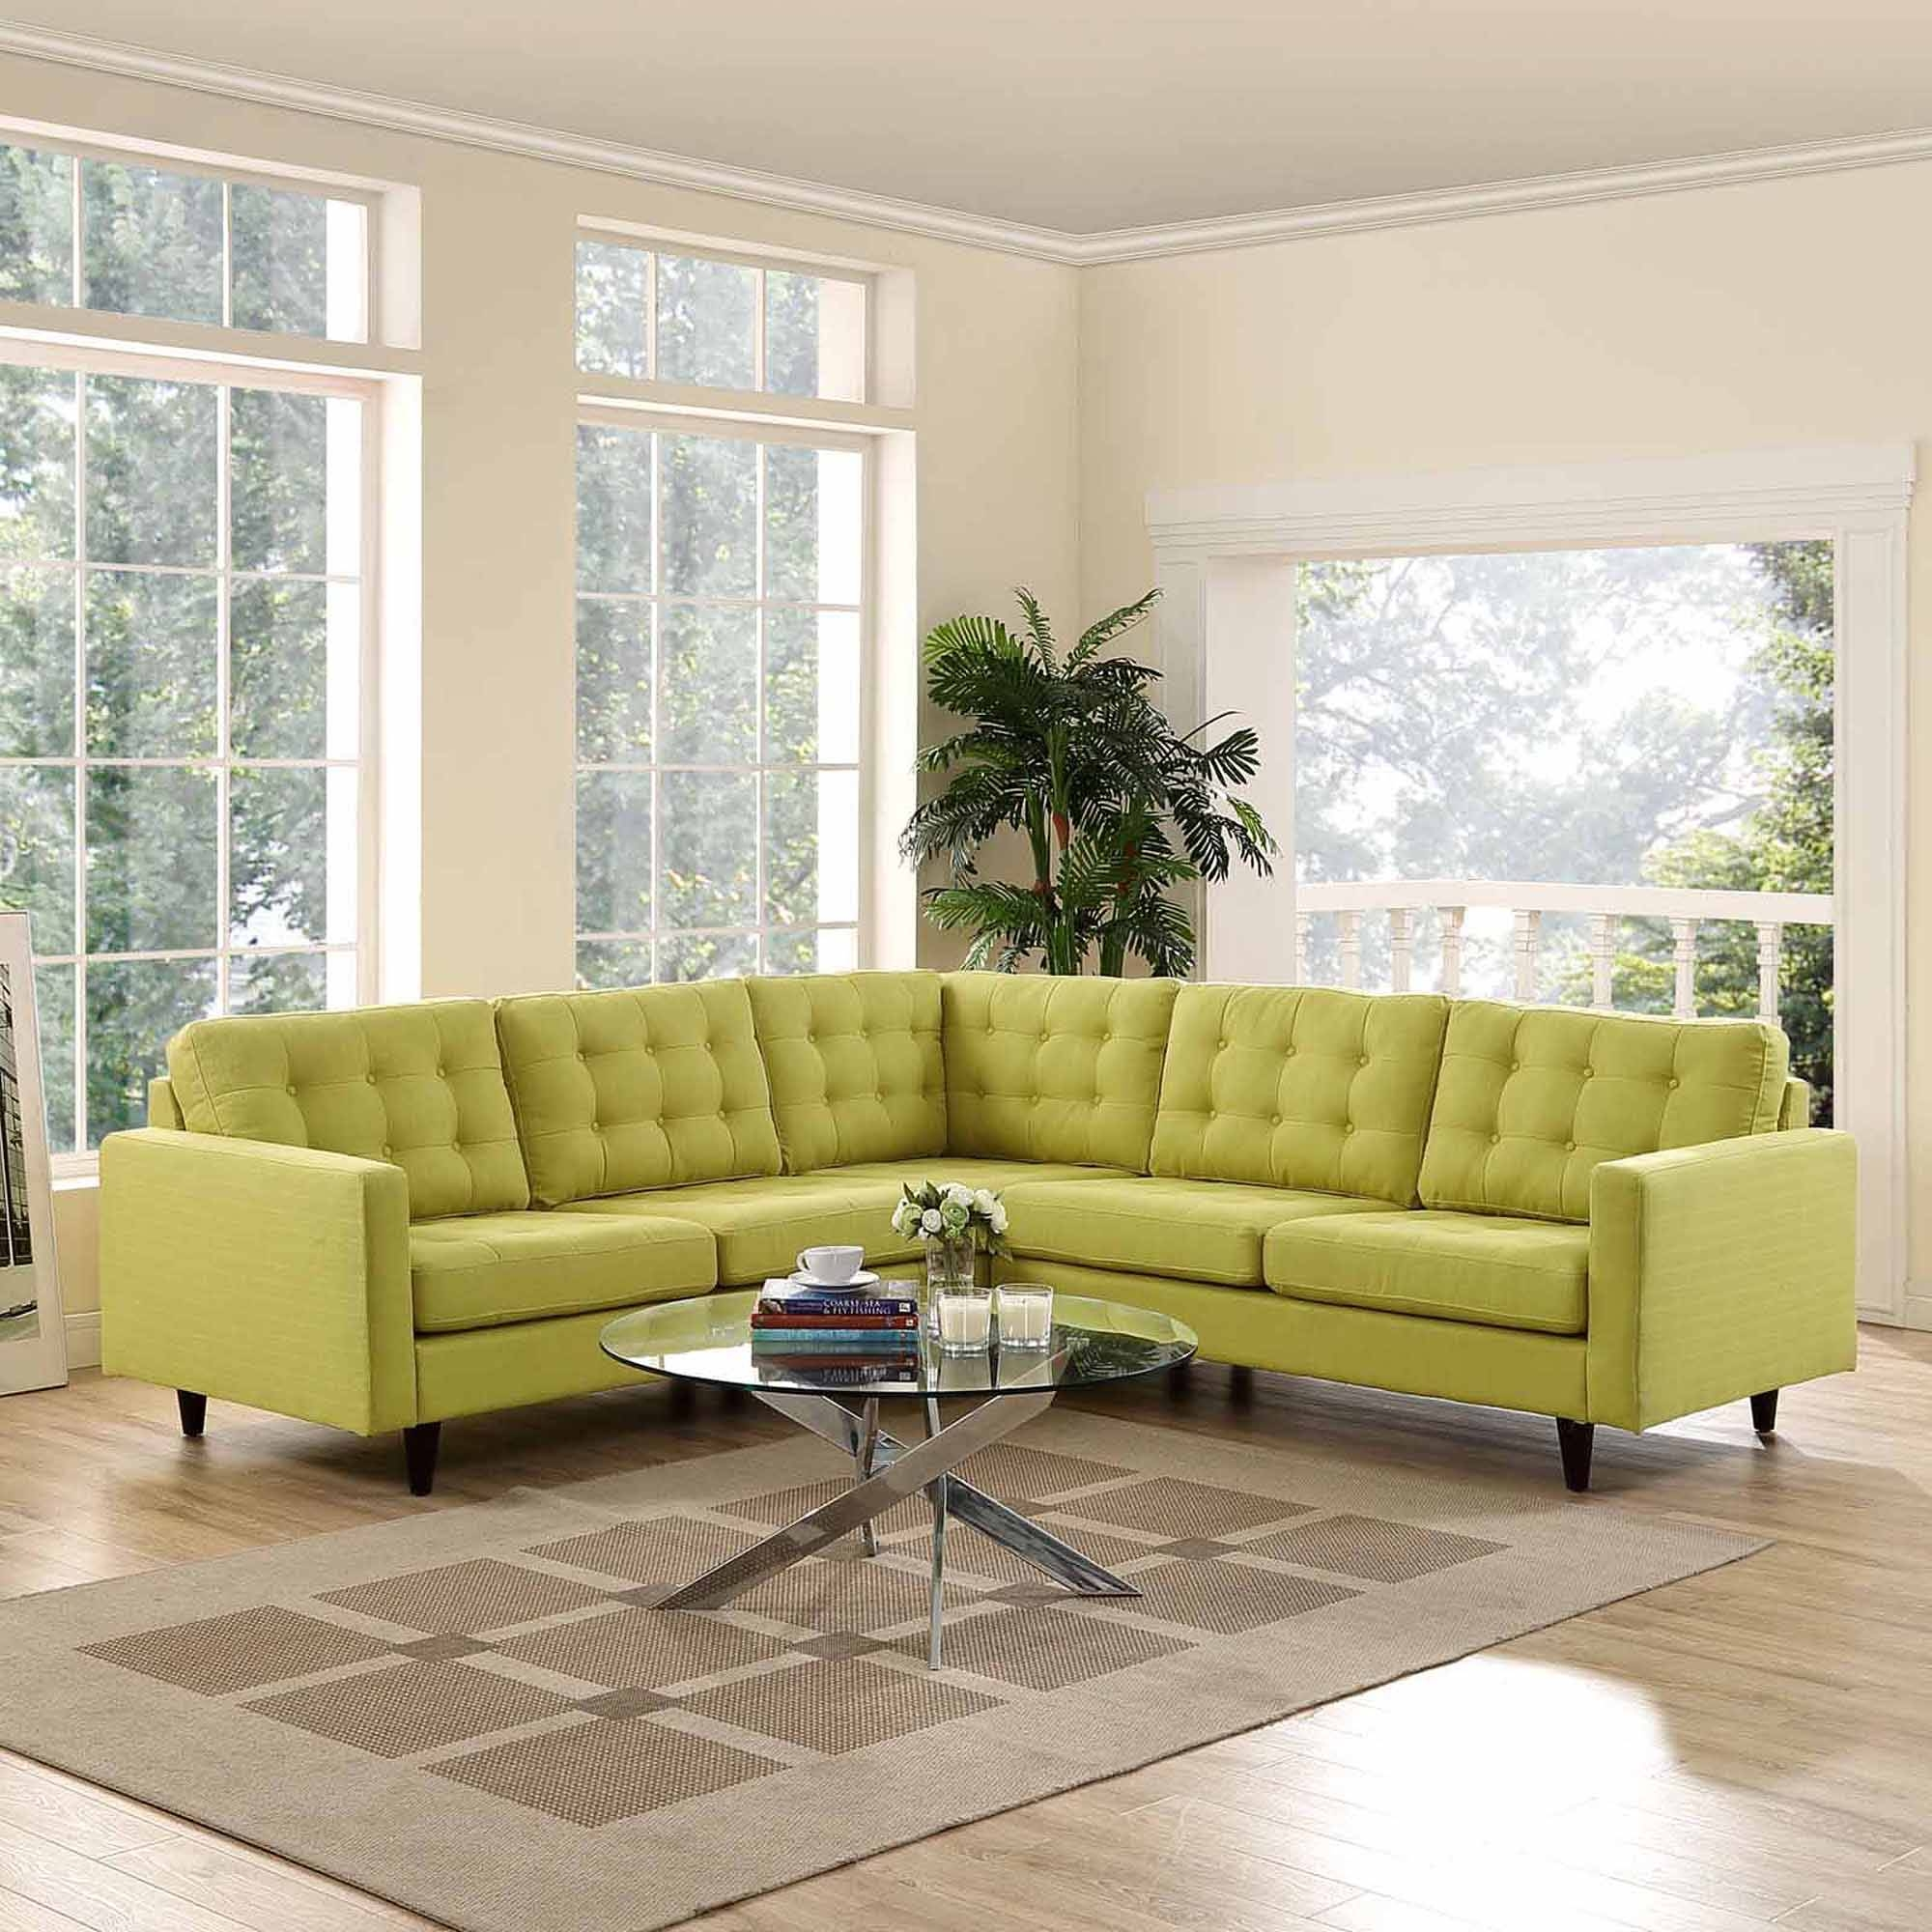 Modway Empress 3 Piece Fabric Sectional Sofa Set, Multiple Colors In Yellow Sectional Sofas (View 15 of 15)